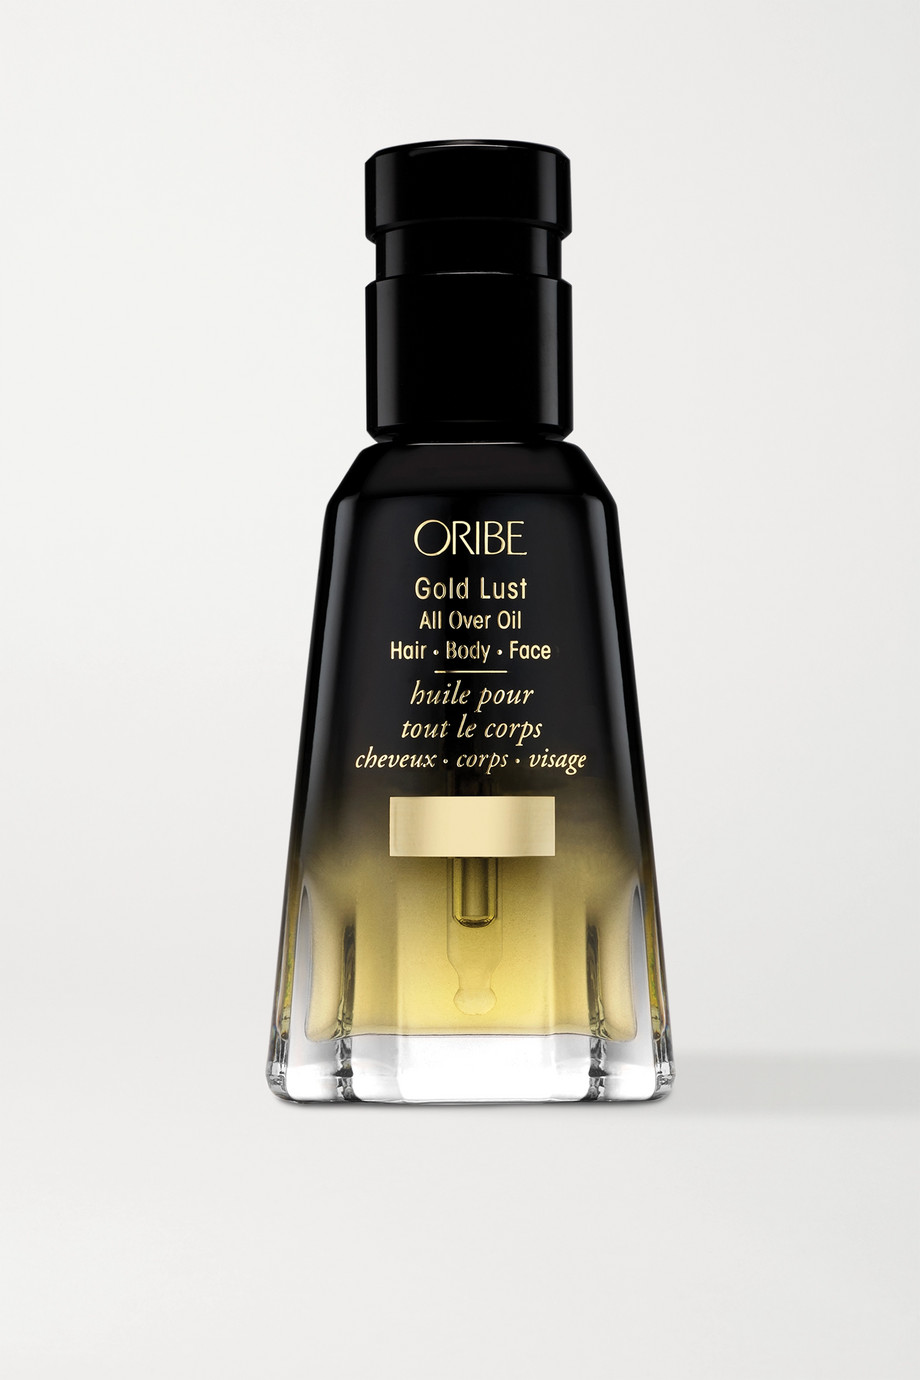 Oribe Gold Lust All Over Oil, 50ml